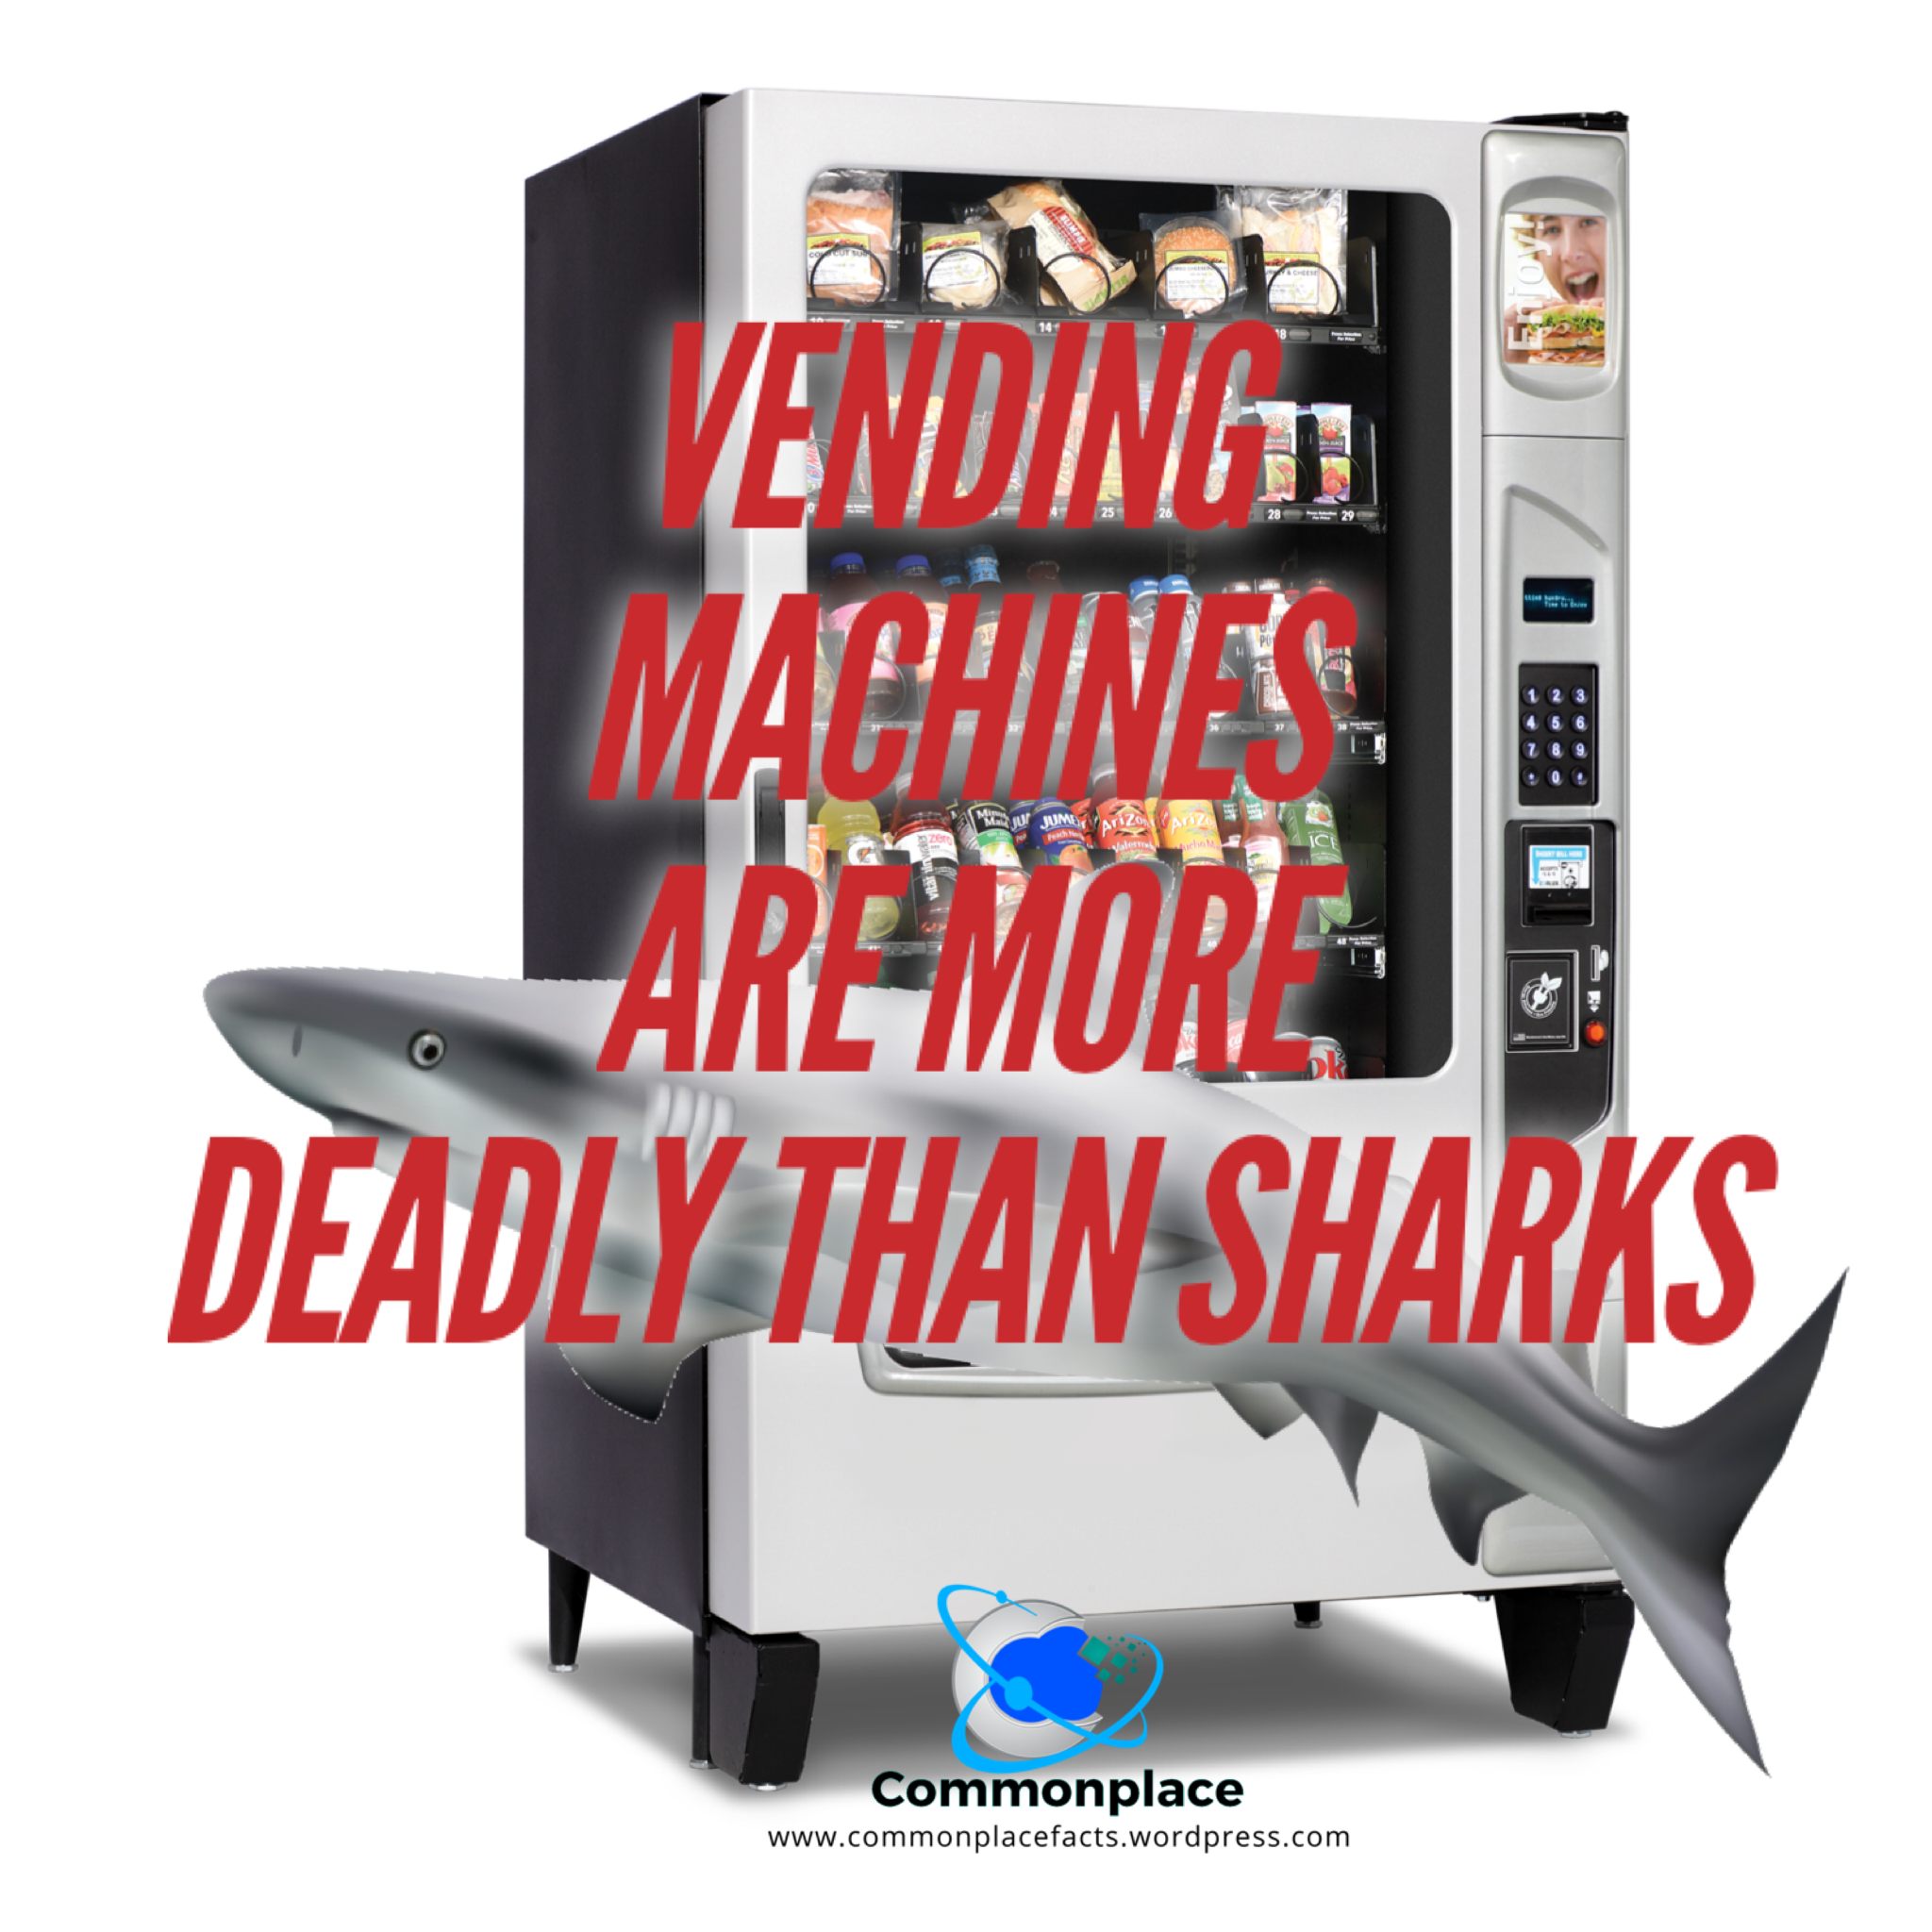 Vending Machines are more deadly than sharks